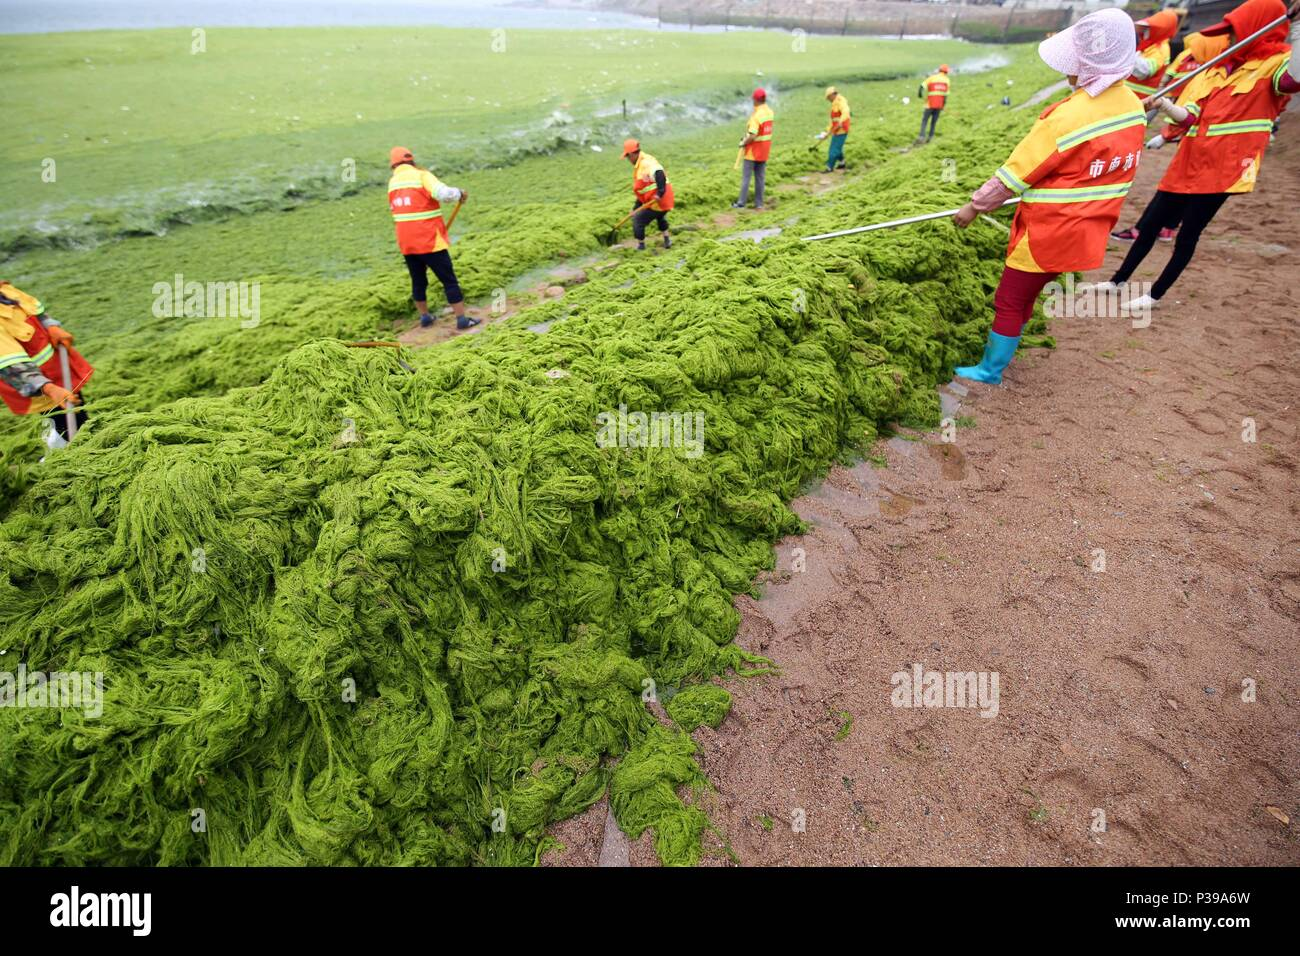 Qingdao, China's Shandong Province. 18th June, 2018. Workers clean up sea lettuces that spread along the coastline at Tuandao bay in Qingdao, east China's Shandong Province, June 18, 2018. A green algae species, sea lettuces can cause environmental concerns when they grow excessively. Credit: Huang Jiexian/Xinhua/Alamy Live News - Stock Image